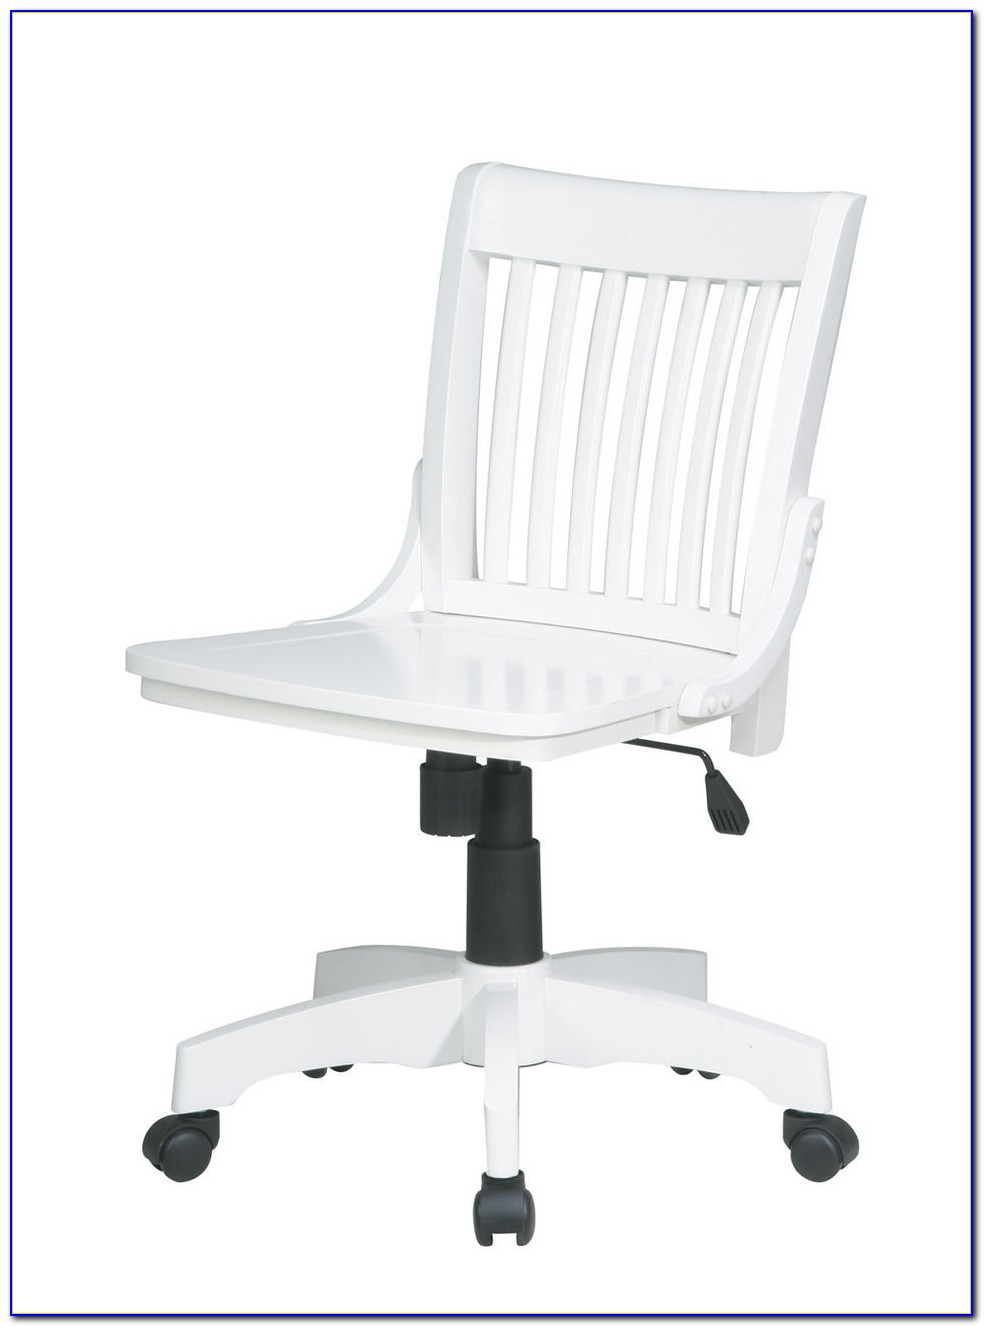 Zuo Scout White Armless Office Chair